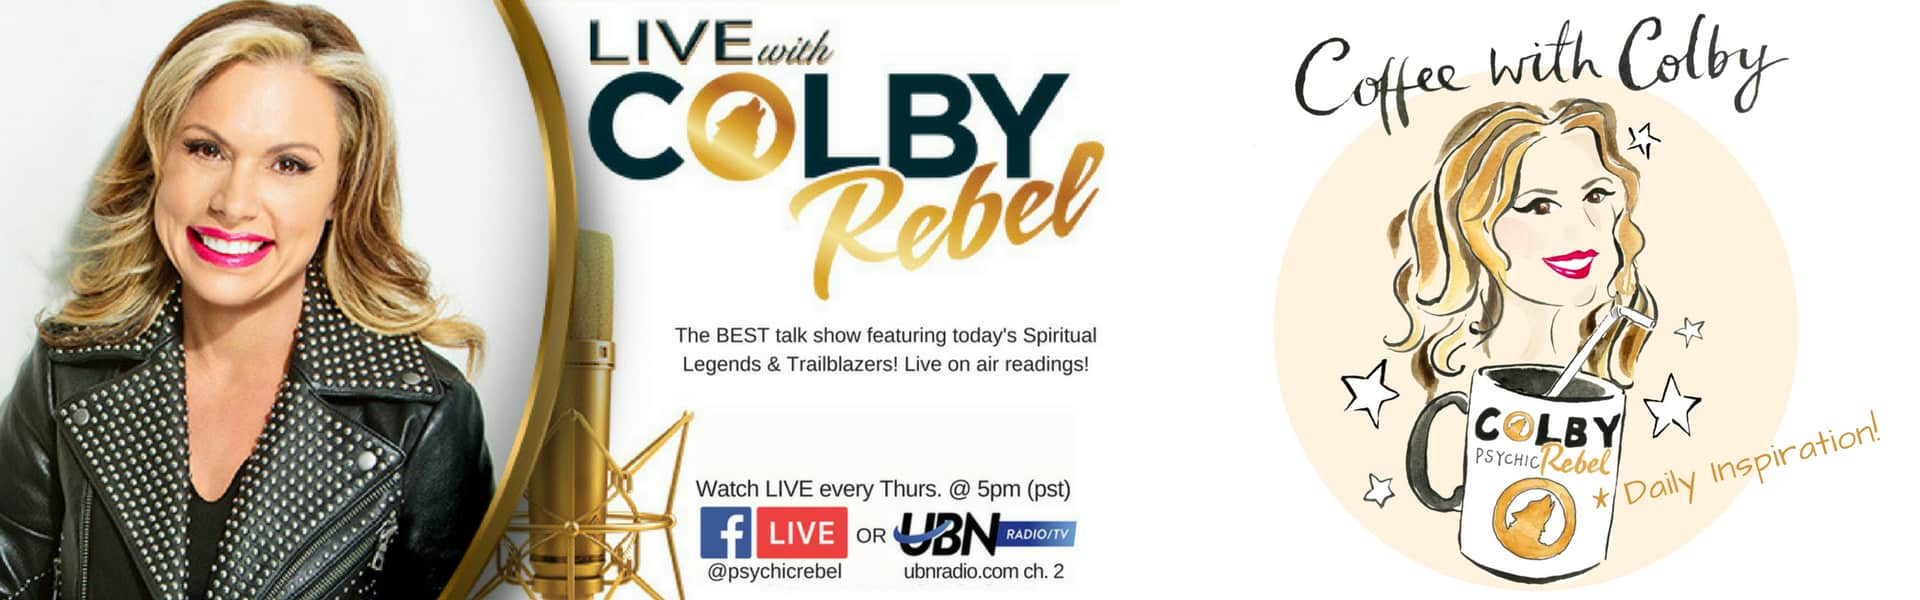 Live with Colby Rebel